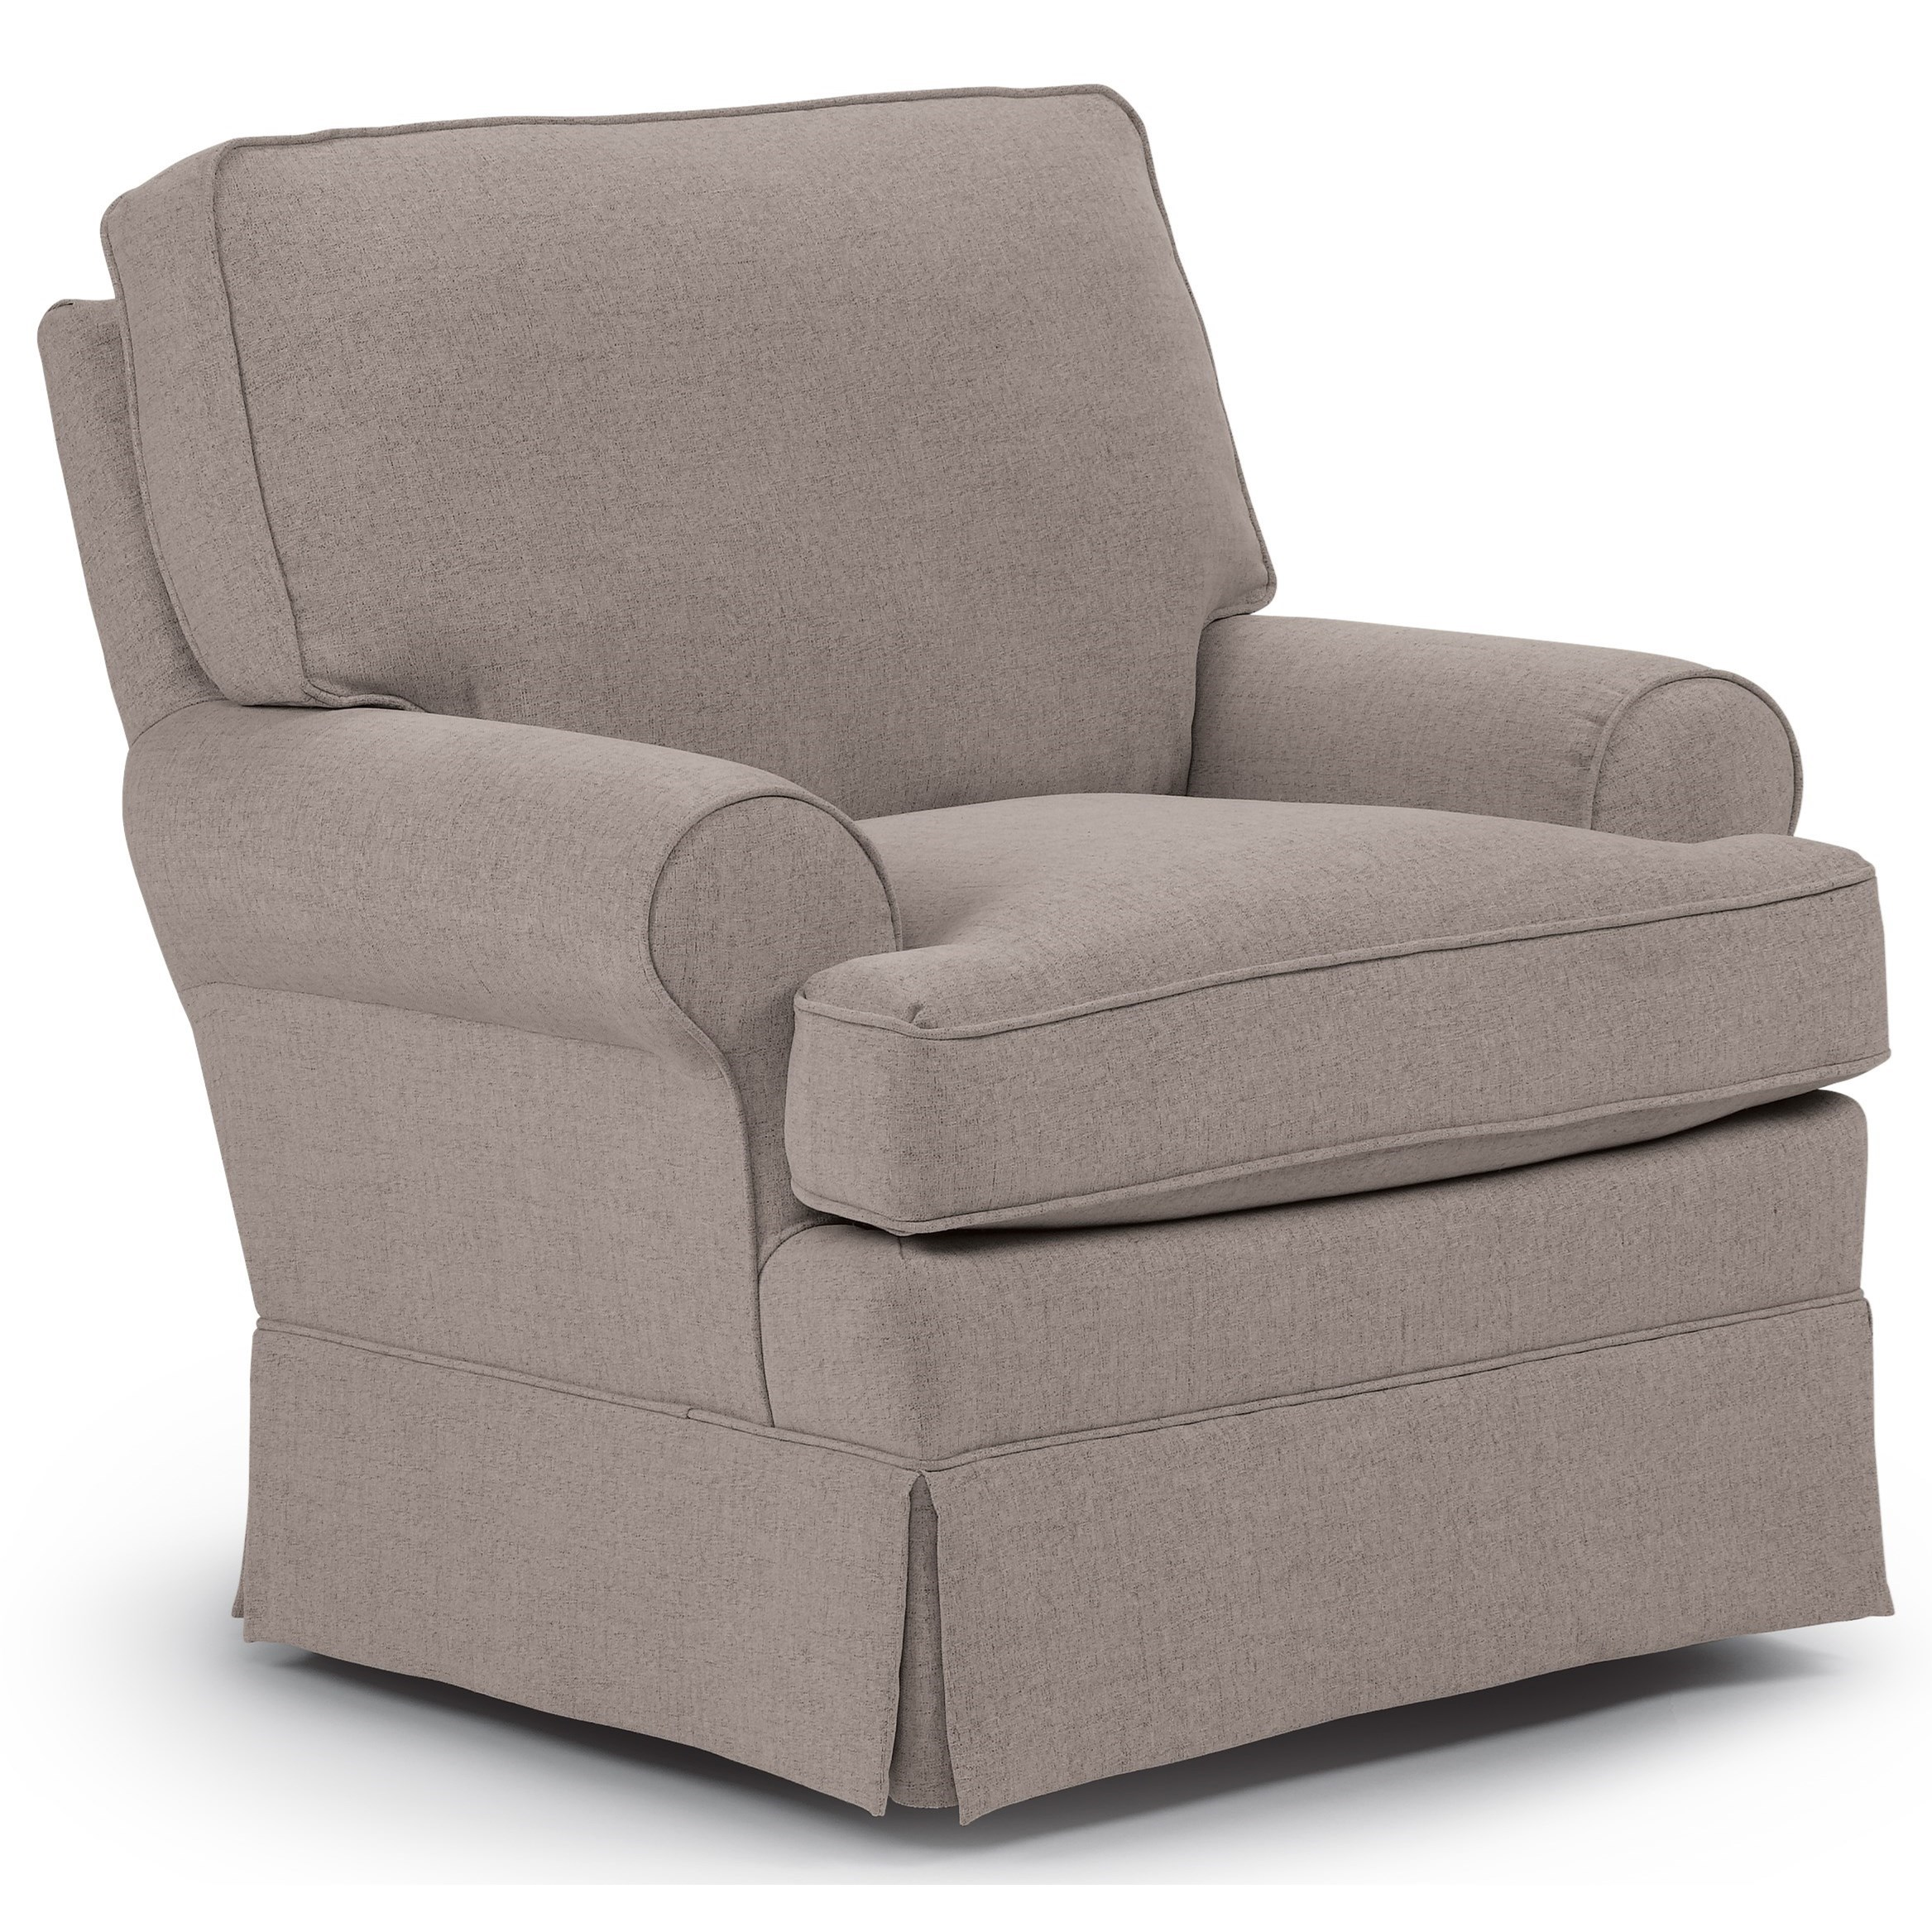 Swivel Living Room Chairs Best Home Furnishings Swivel Glide Chairs Quinn Swivel